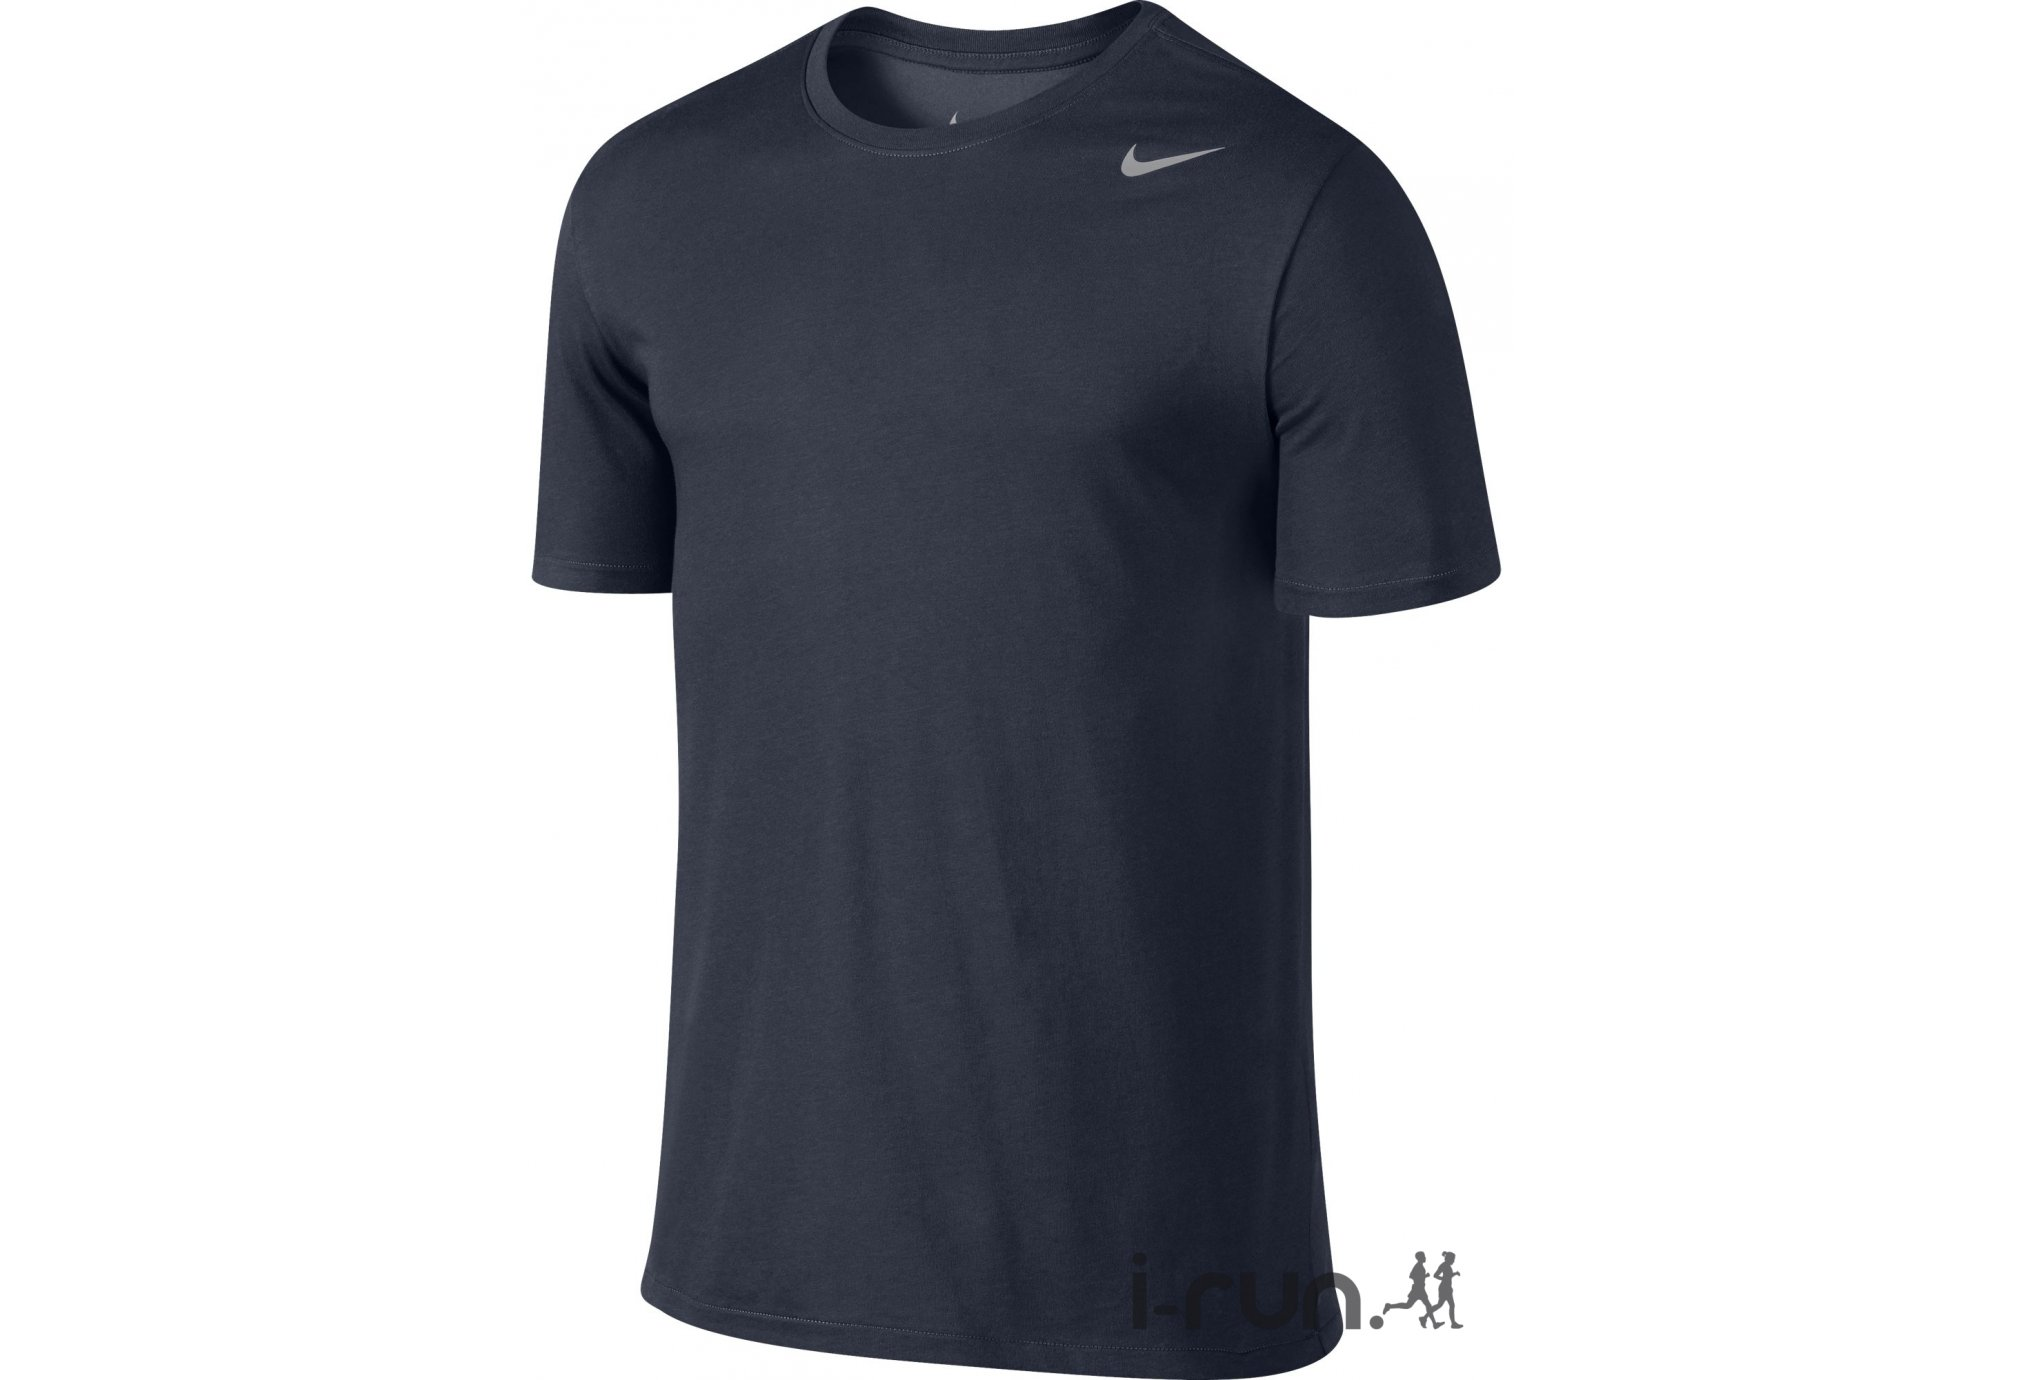 Nike Tee-Shirt Dri-Fit Cotton Version 2.0 M vêtement running homme